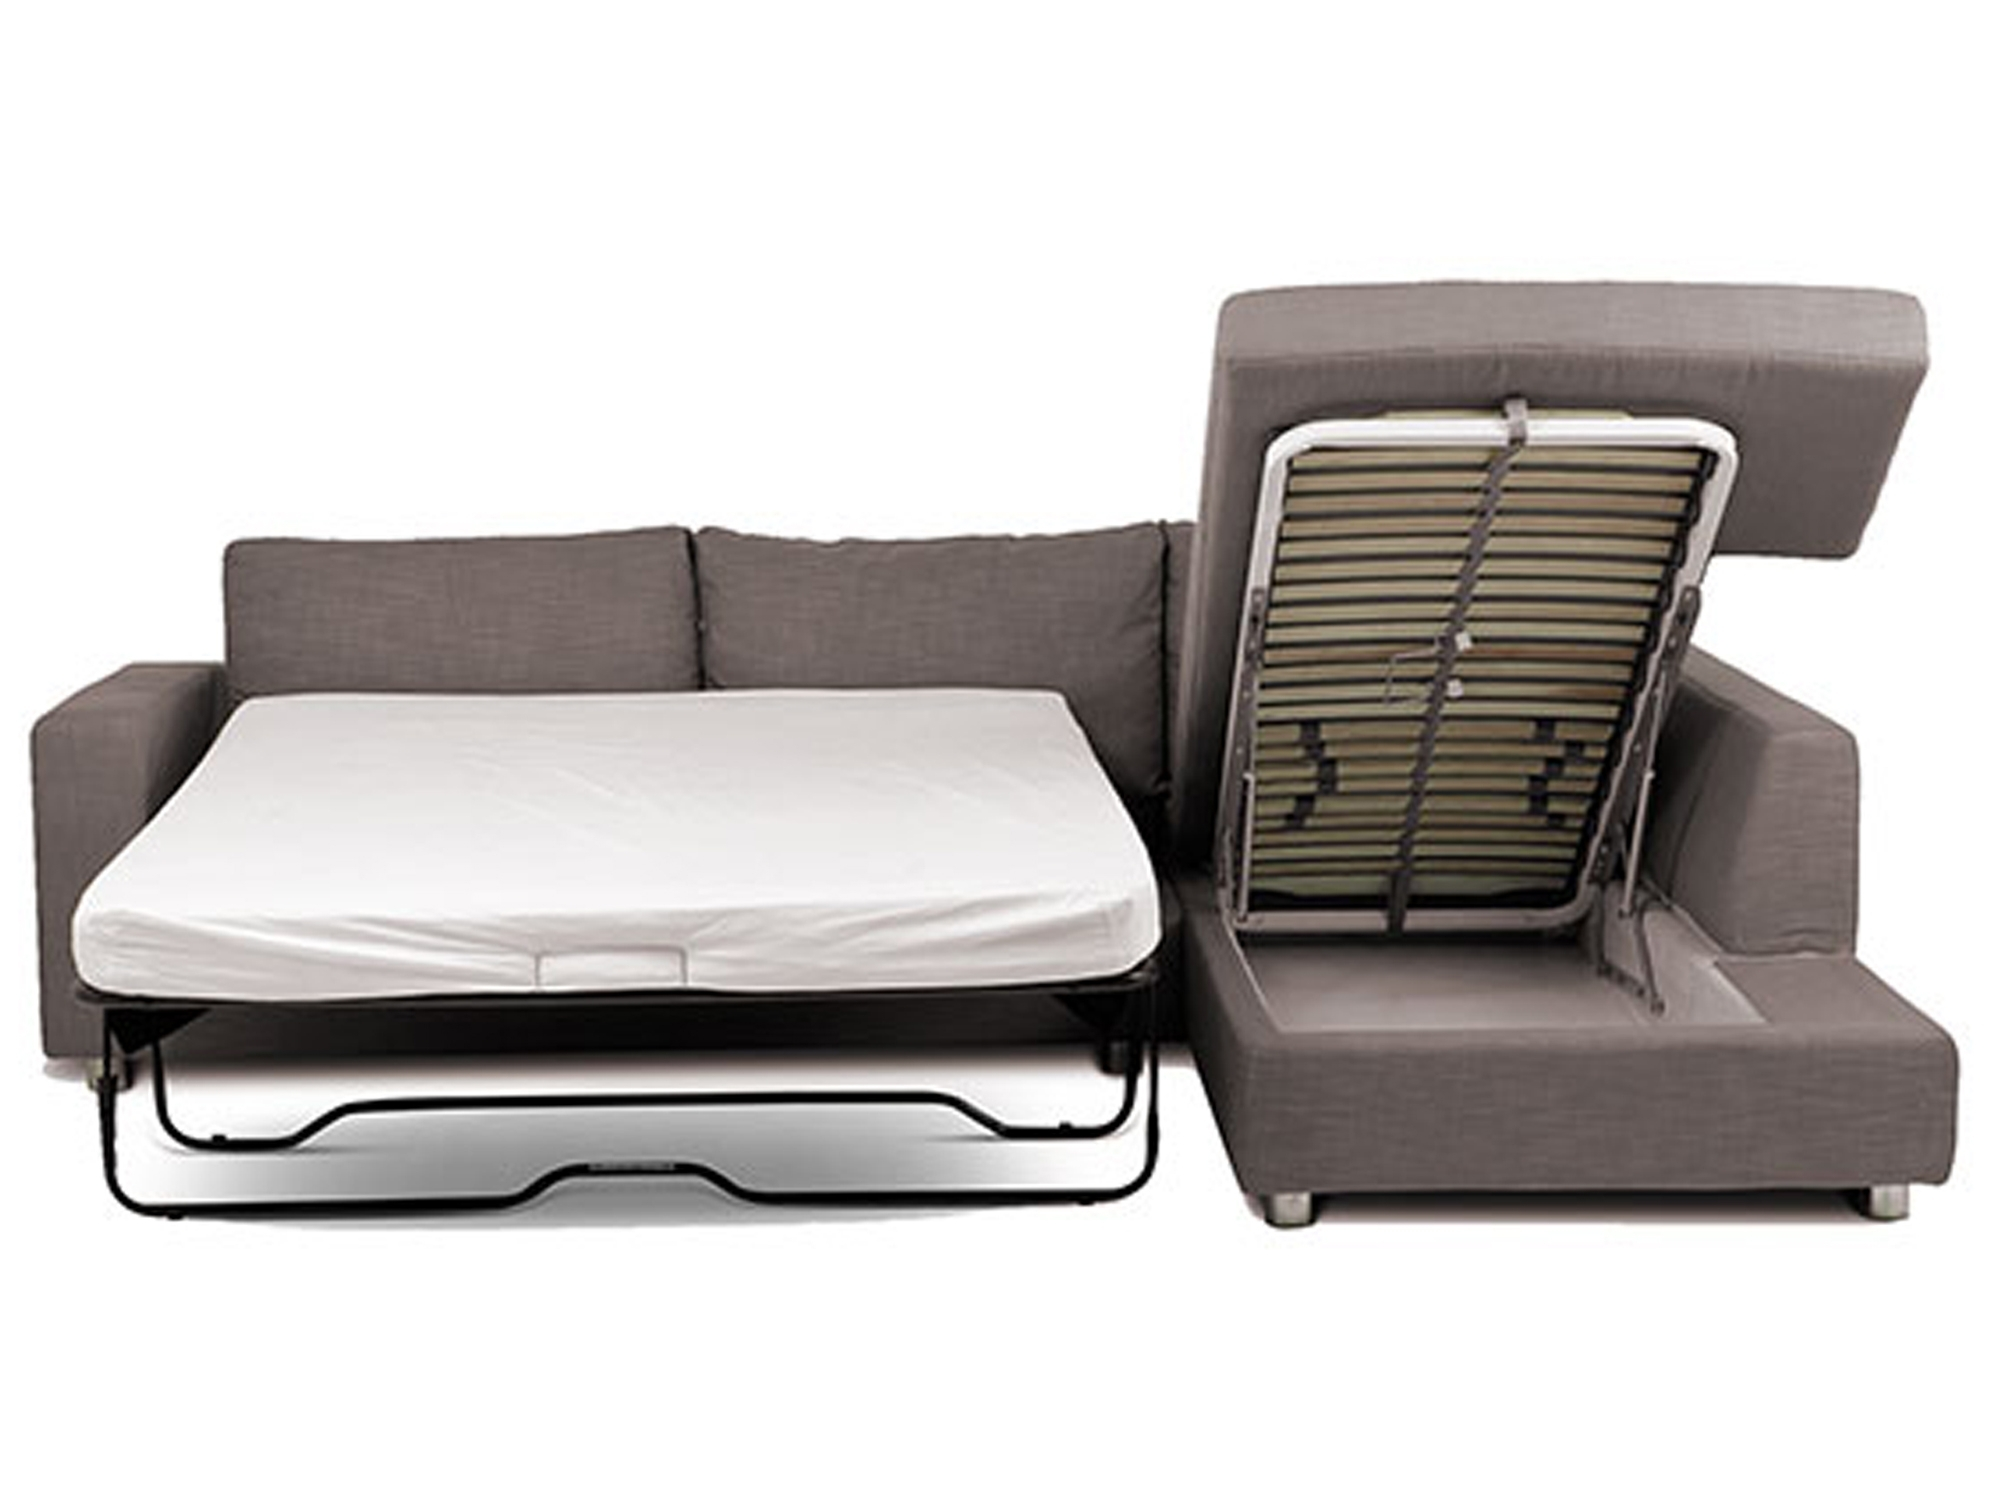 A Corner Sofa Bed For Your Home – Goodworksfurniture With Regard To Widely Used Corner Sofa Beds With Chaise (View 1 of 15)